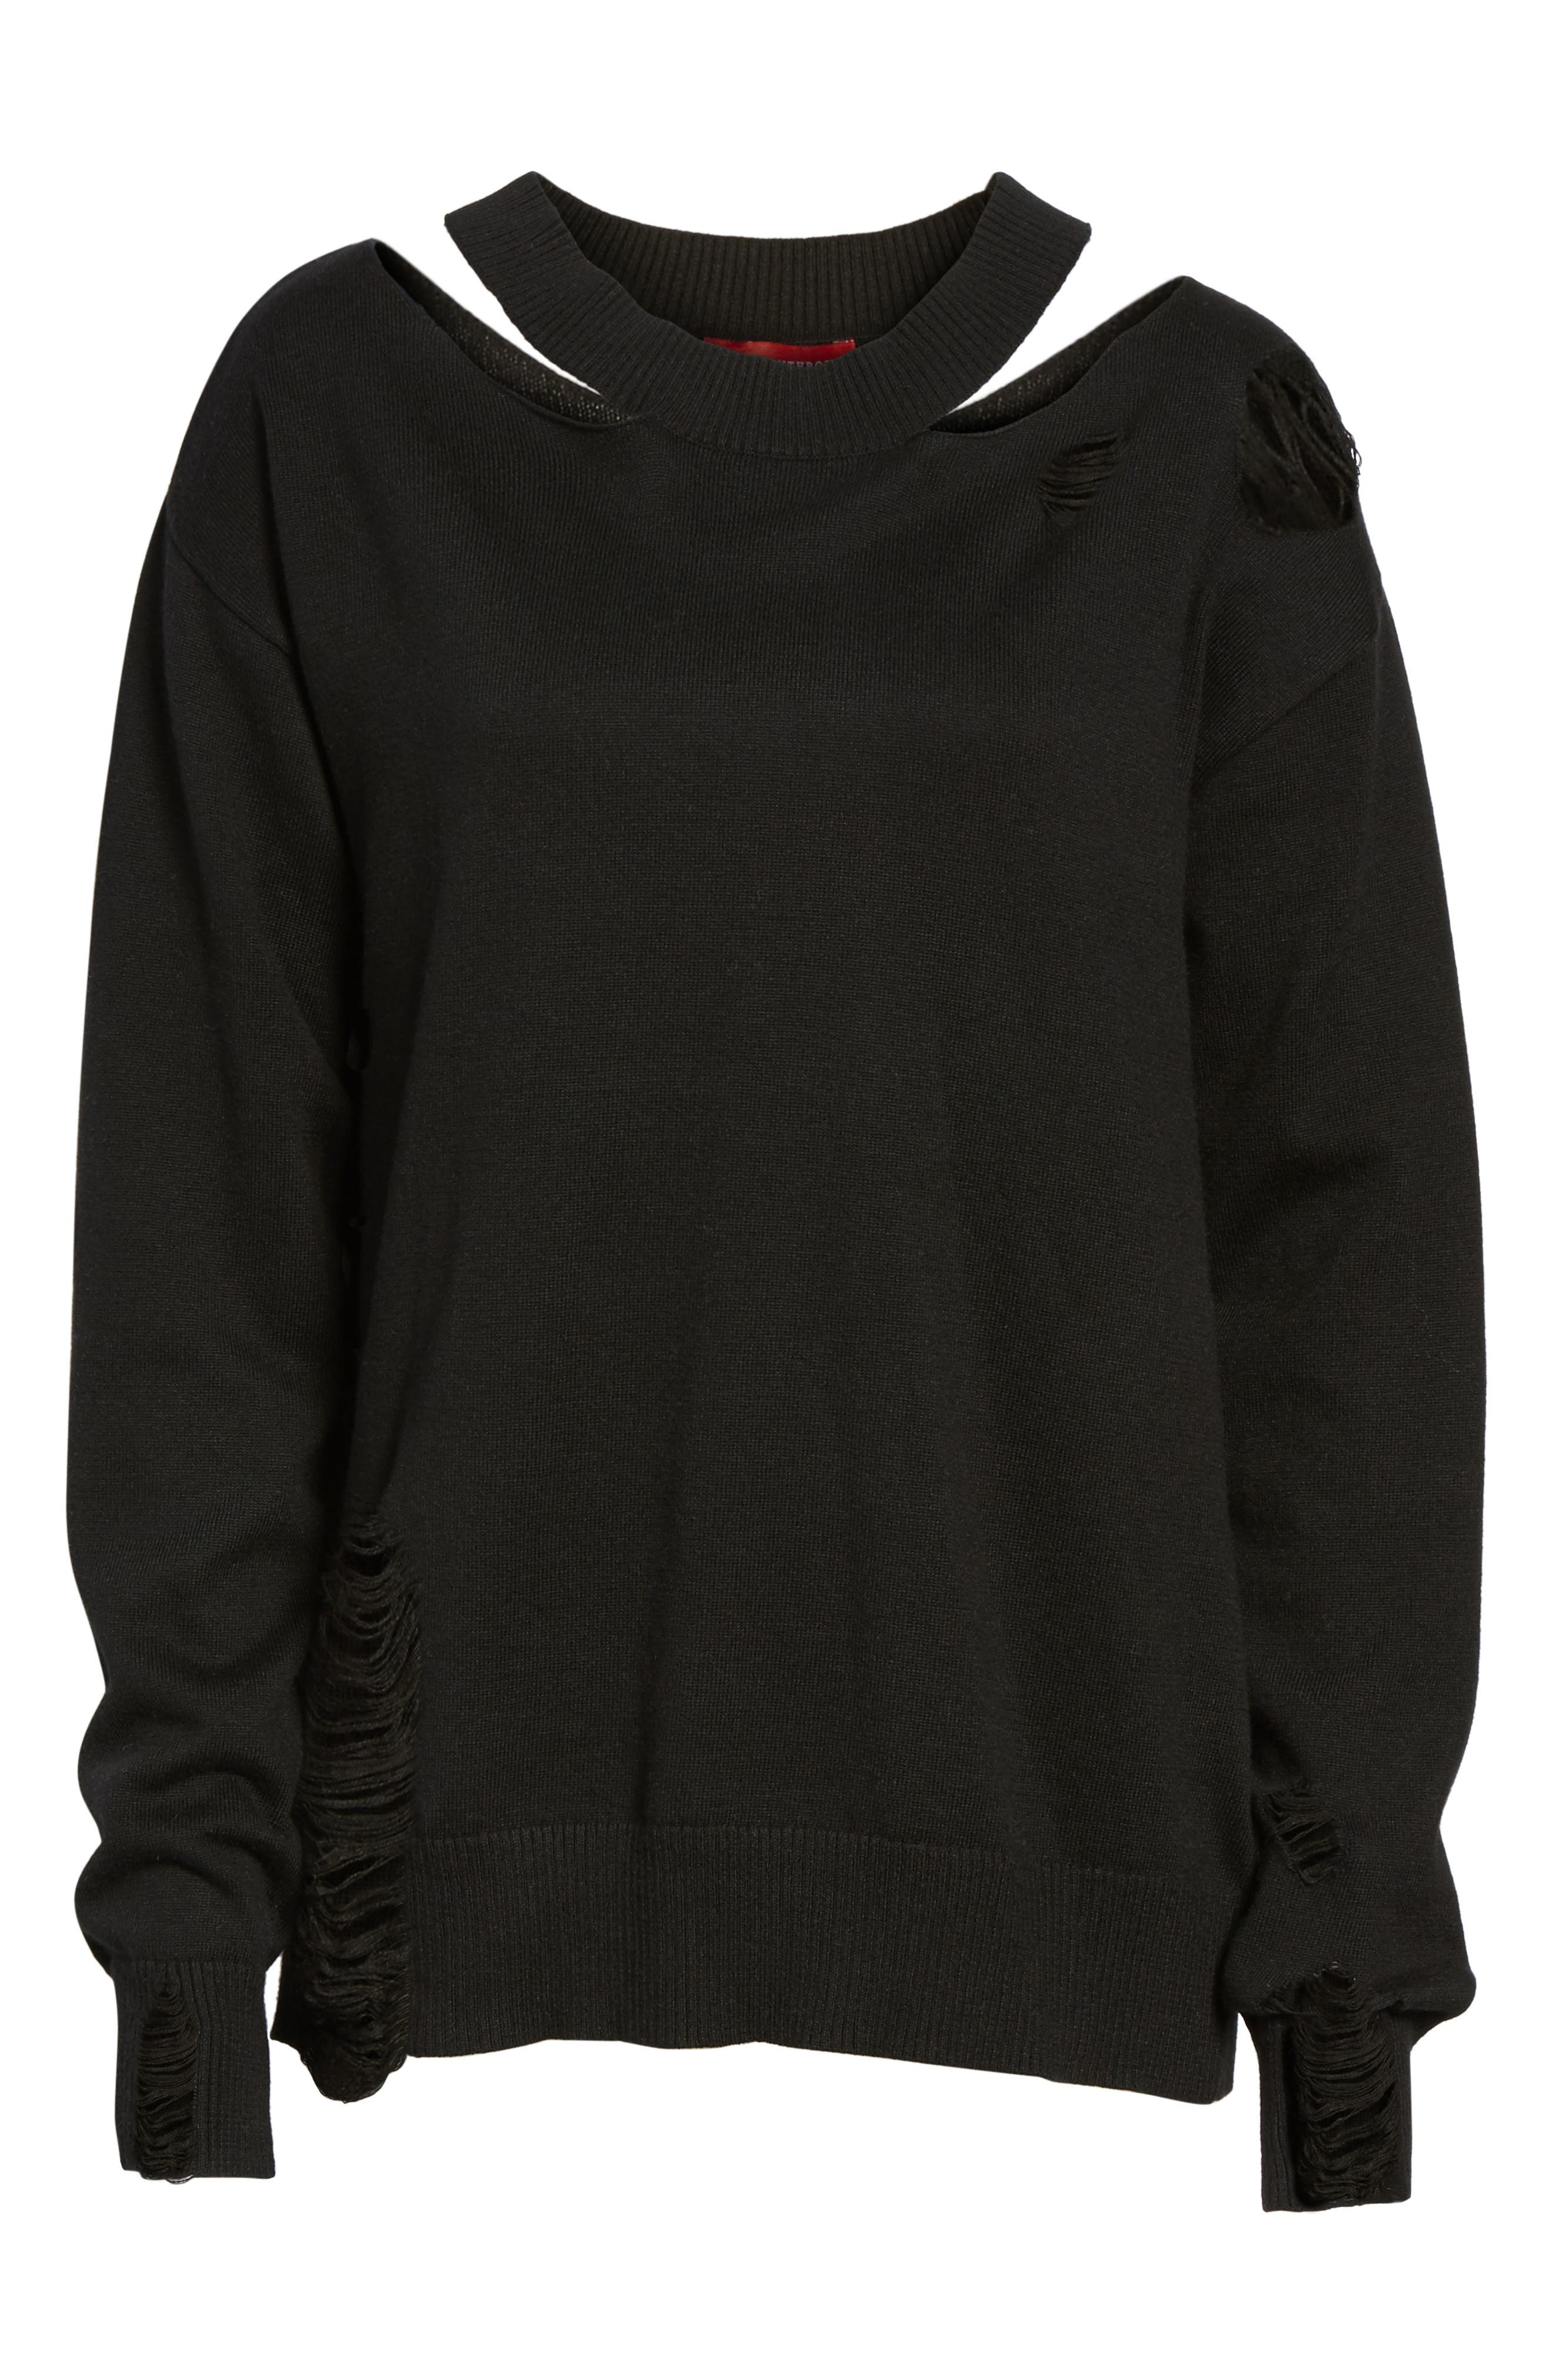 Julian Distressed Sweatshirt,                             Alternate thumbnail 6, color,                             001